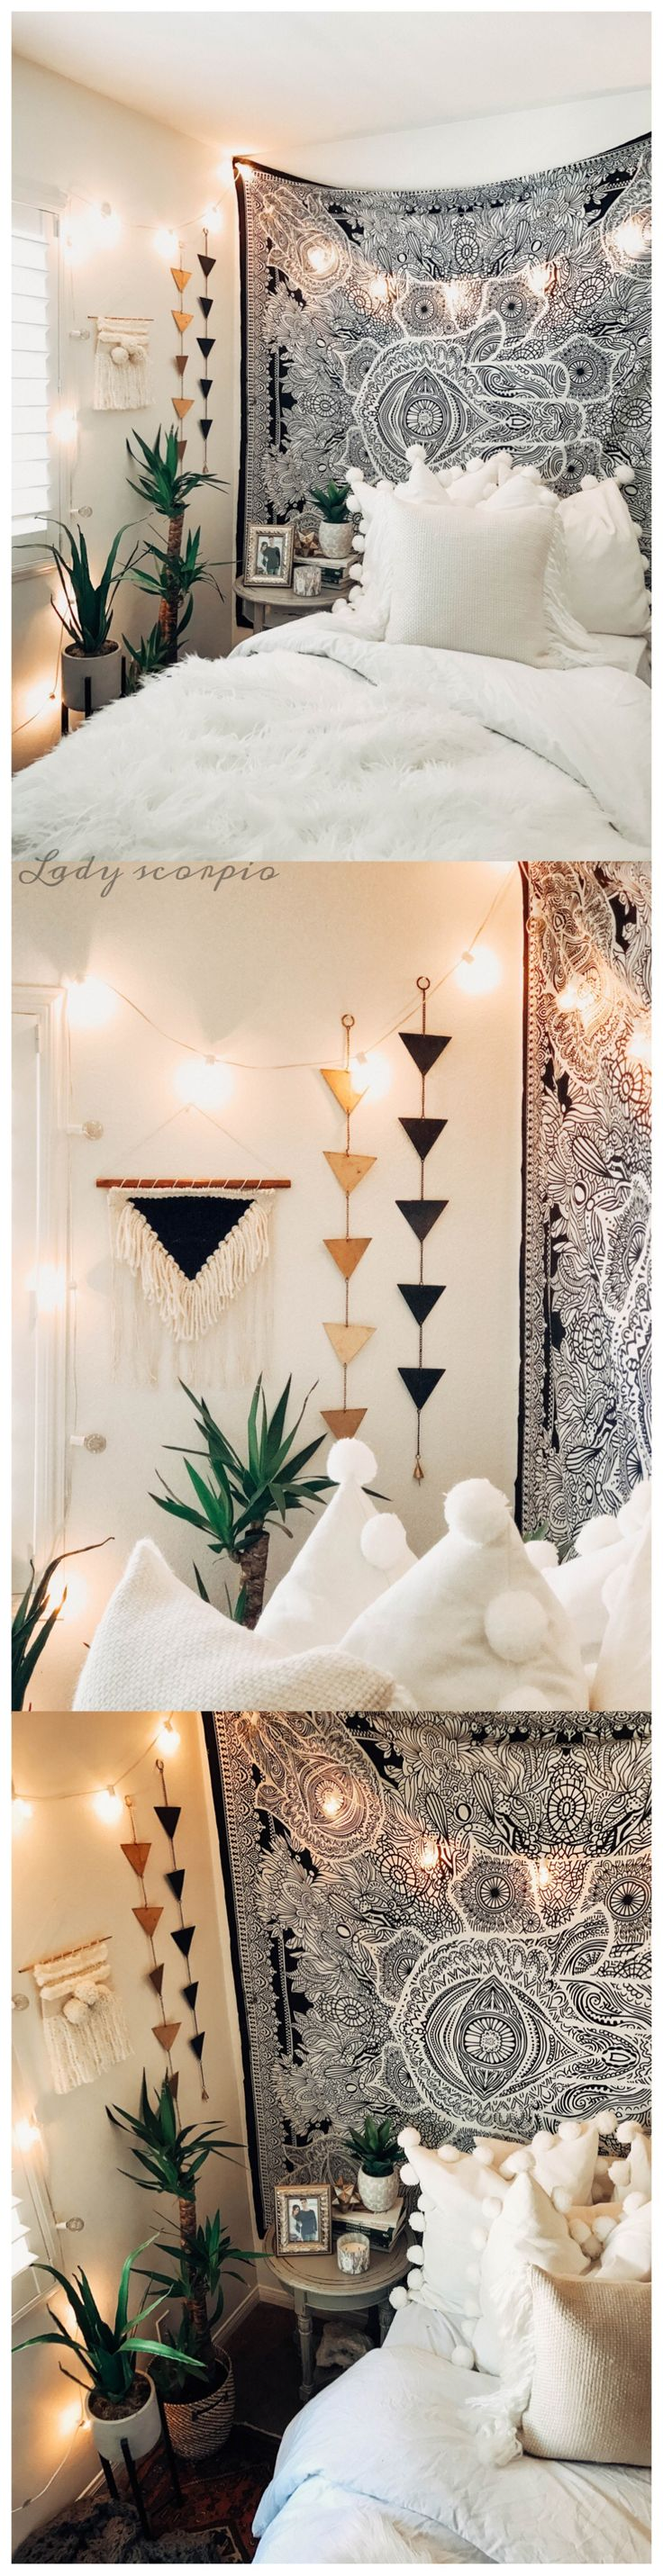 Room Decor Themes best 25+ bohemian dorm ideas only on pinterest | college dorms